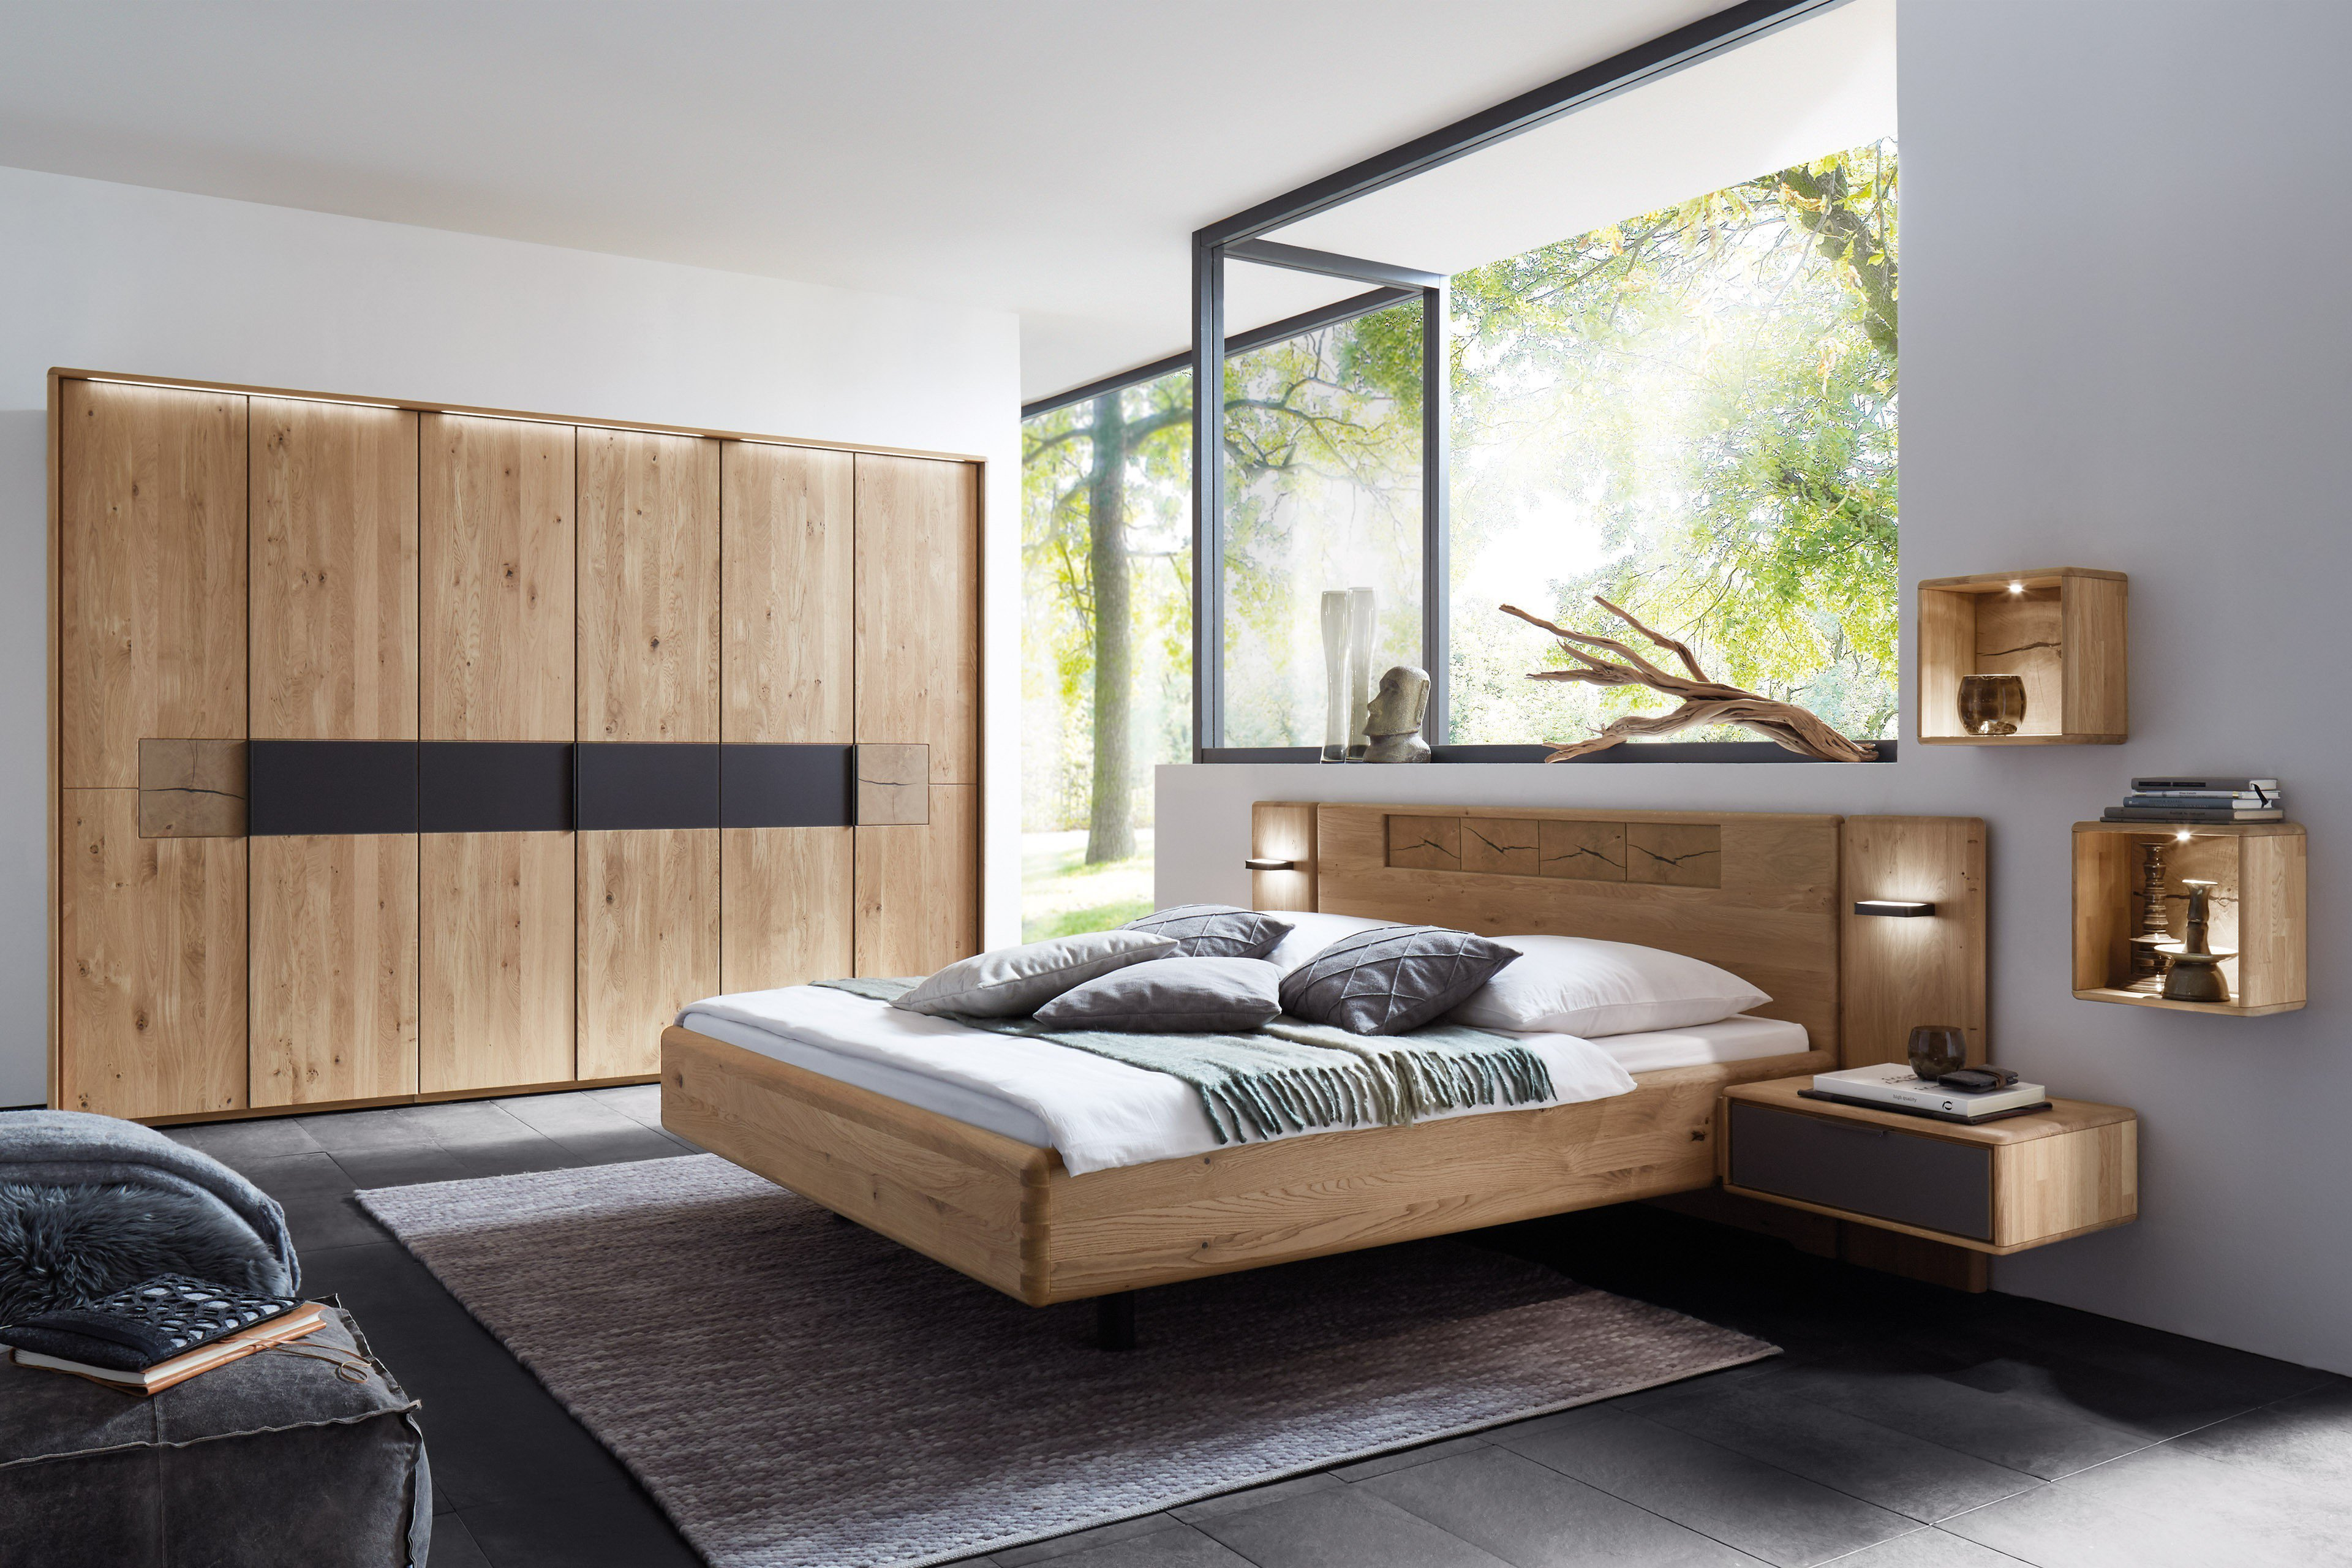 schlafzimmer set 160x200 schlafzimmer komplett mit boxspringbett biber bettw sche kindermotive. Black Bedroom Furniture Sets. Home Design Ideas